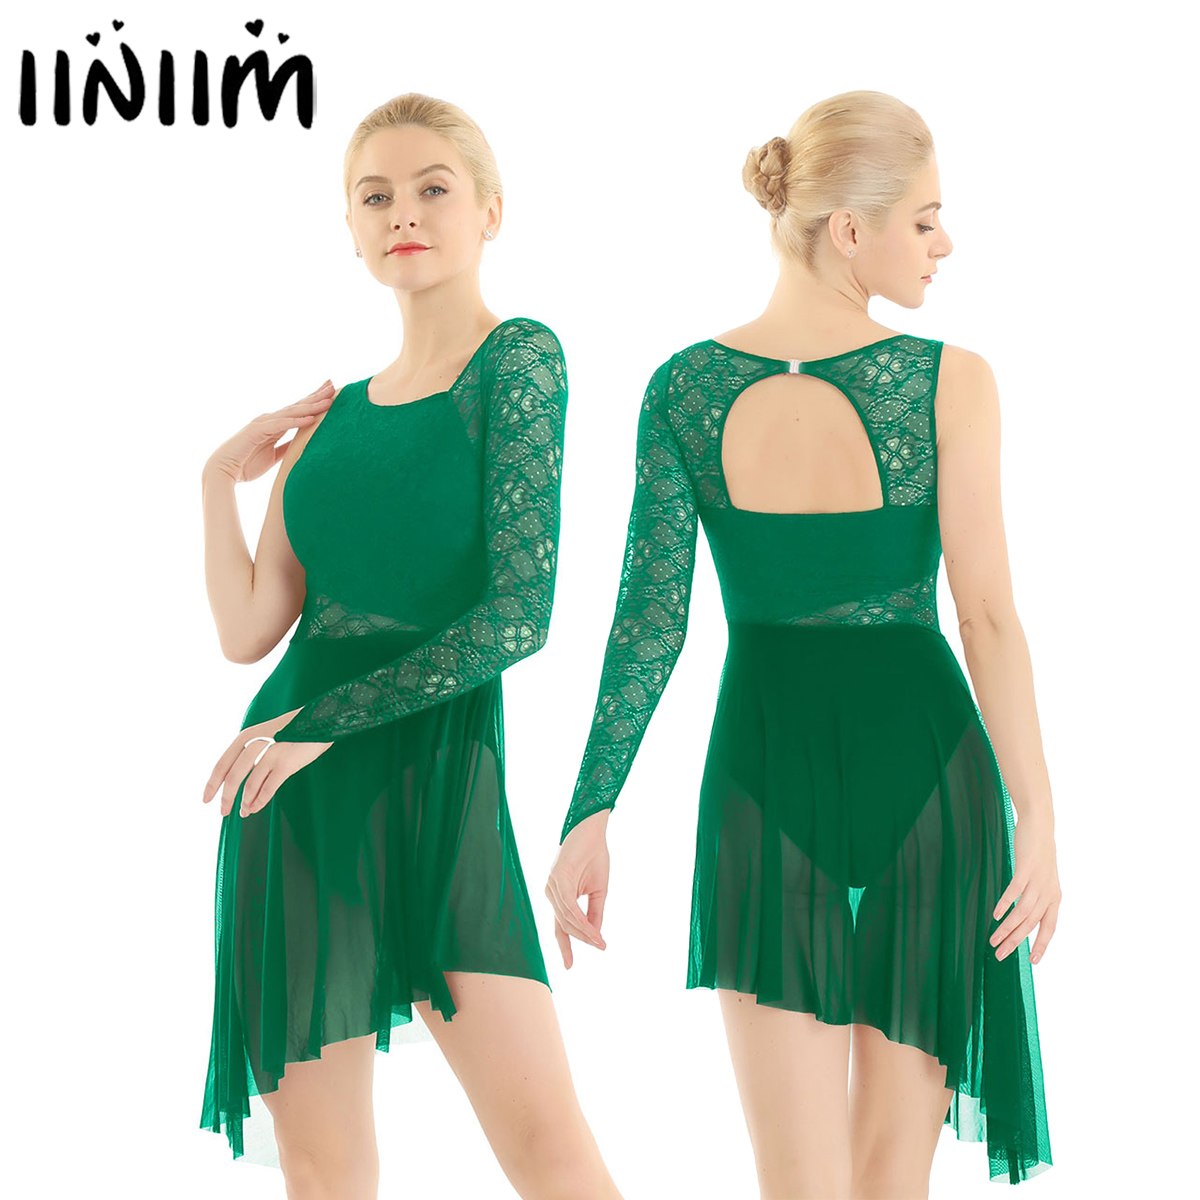 Women Ballet Leotard Dress Single With Fingertip Lace Bodice Lyrical Modern Dance Wear Femme Adult Asymmetric Gymnastics Costume